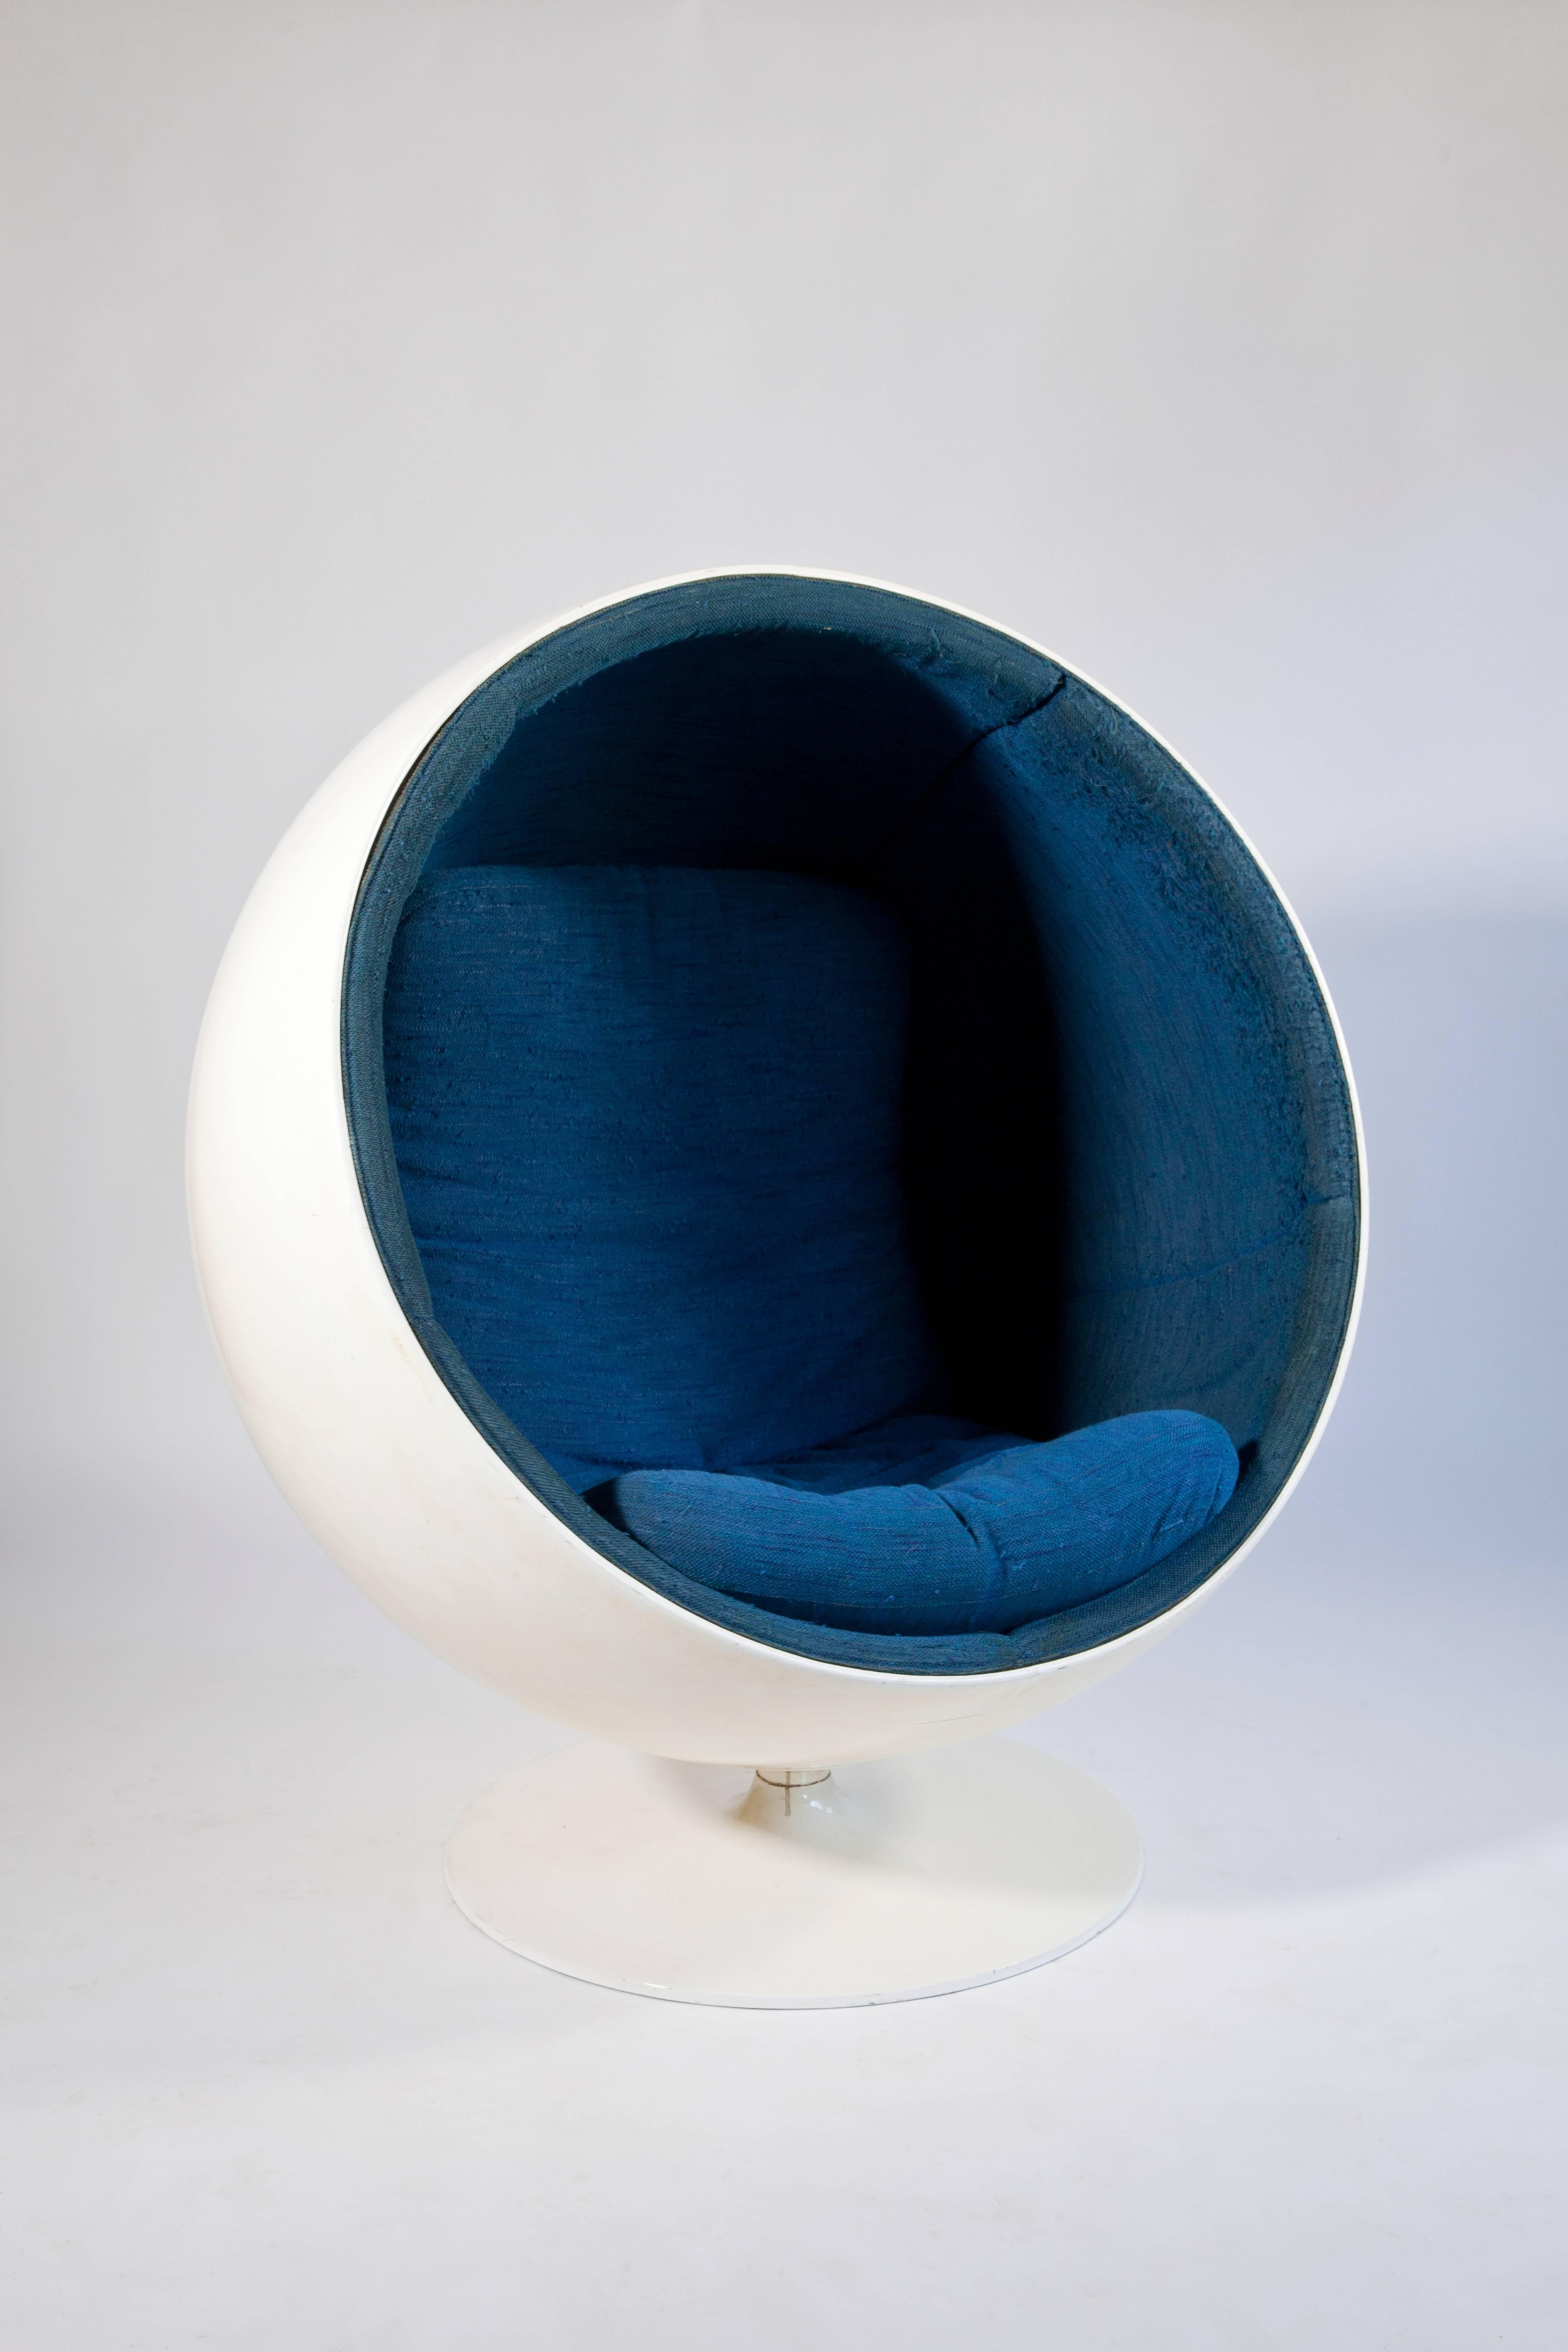 Original Vintage \'Ball Chair\' Designed by Eero Aarnio in 1963 For ...